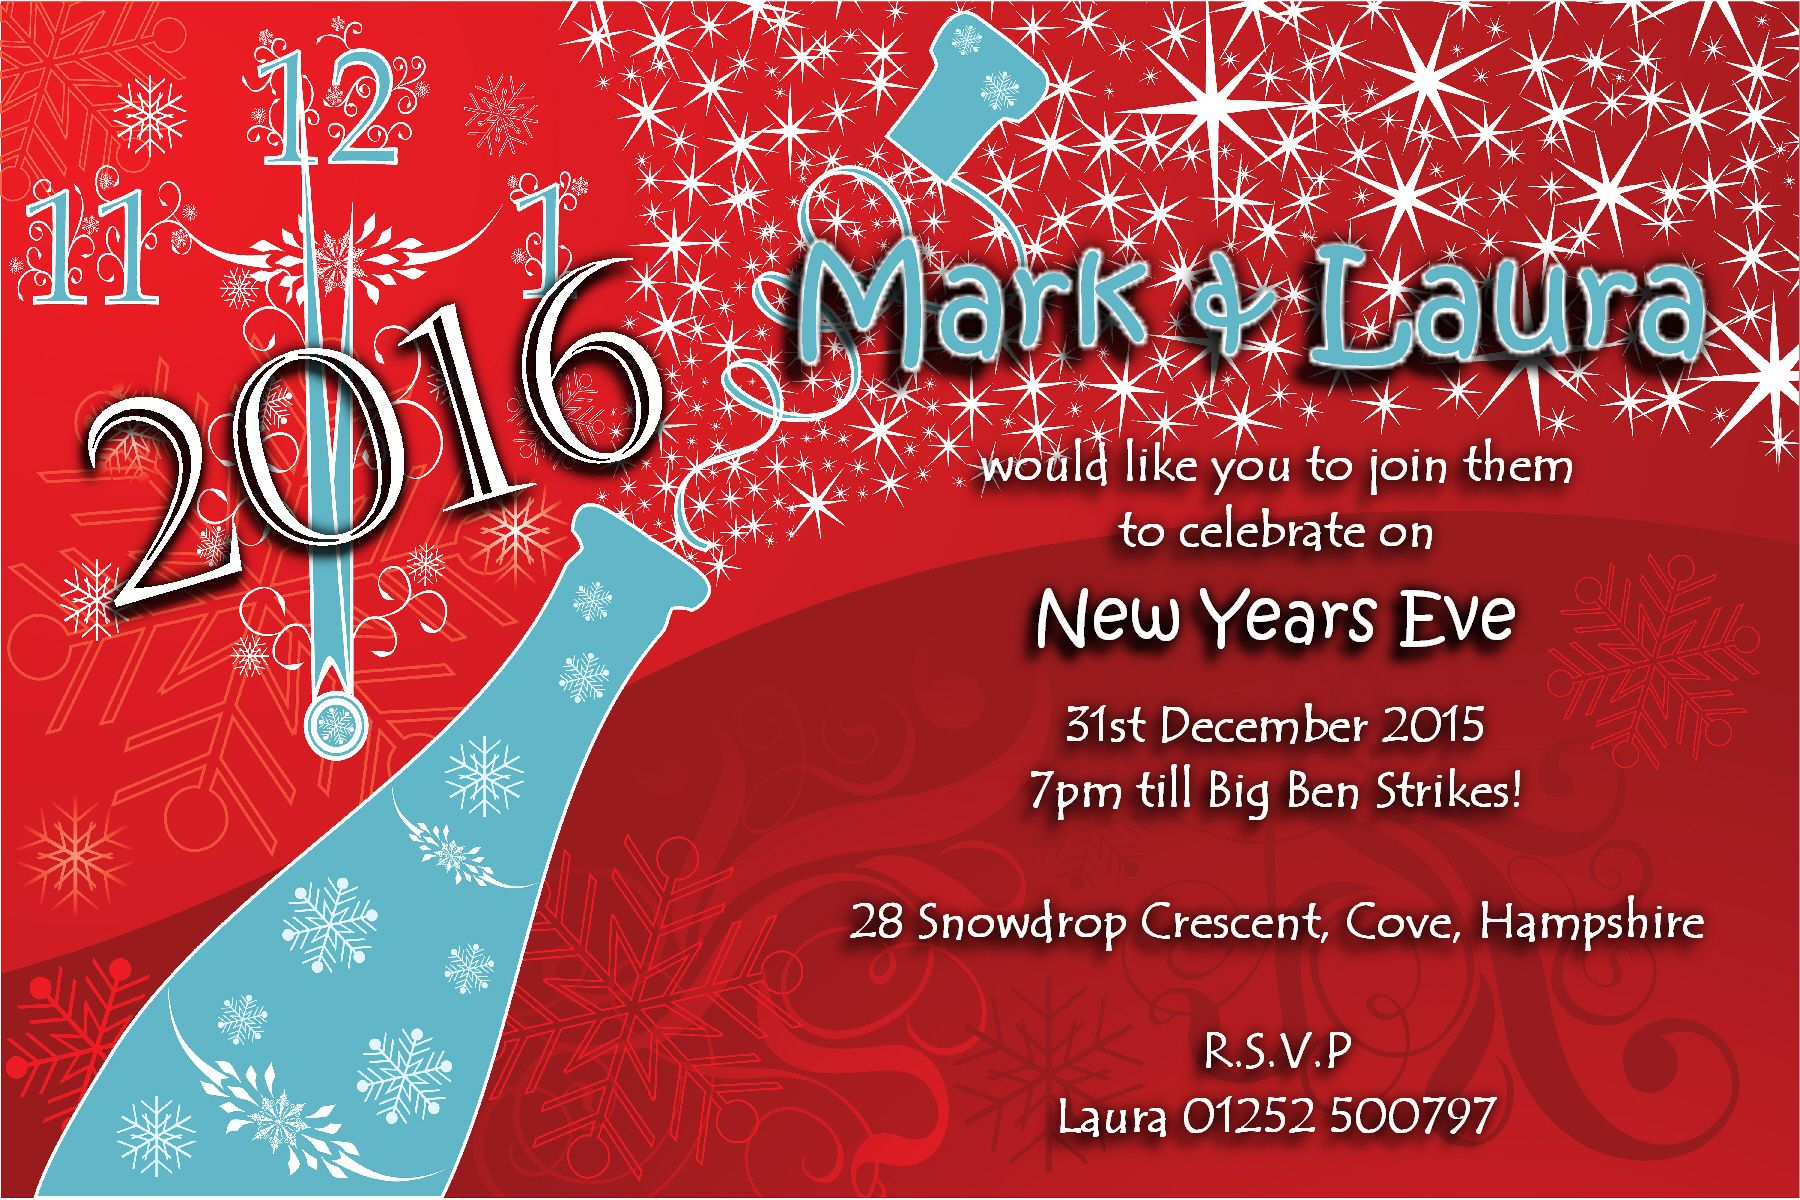 New Years Party Invitations could be nice ideas for your invitation template